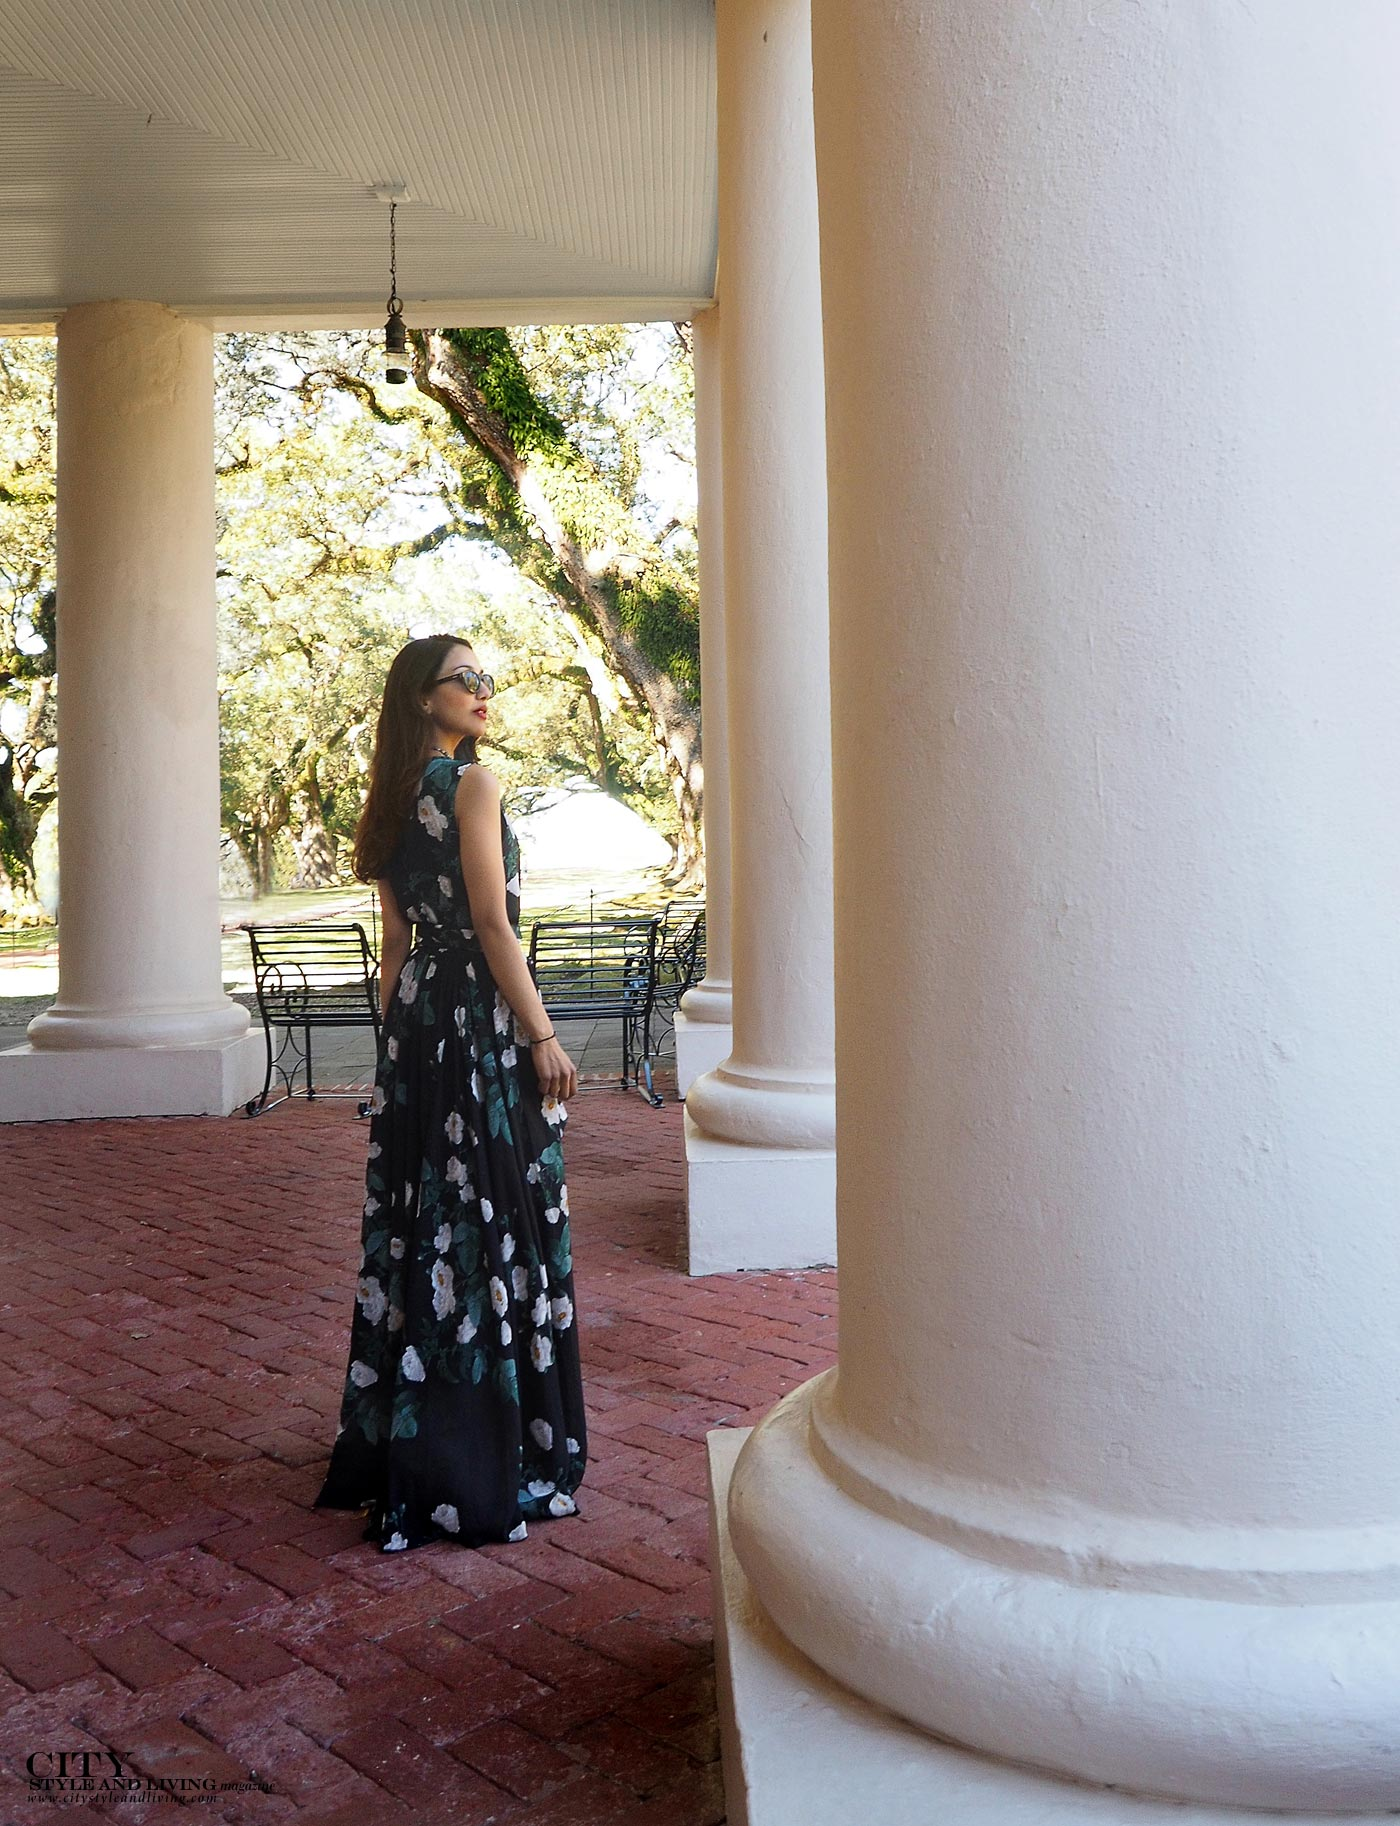 City style and living magazine The Editors Notebook style fashion blogger Shivana Maharaj Oak Alley Plantation maxi dress columns